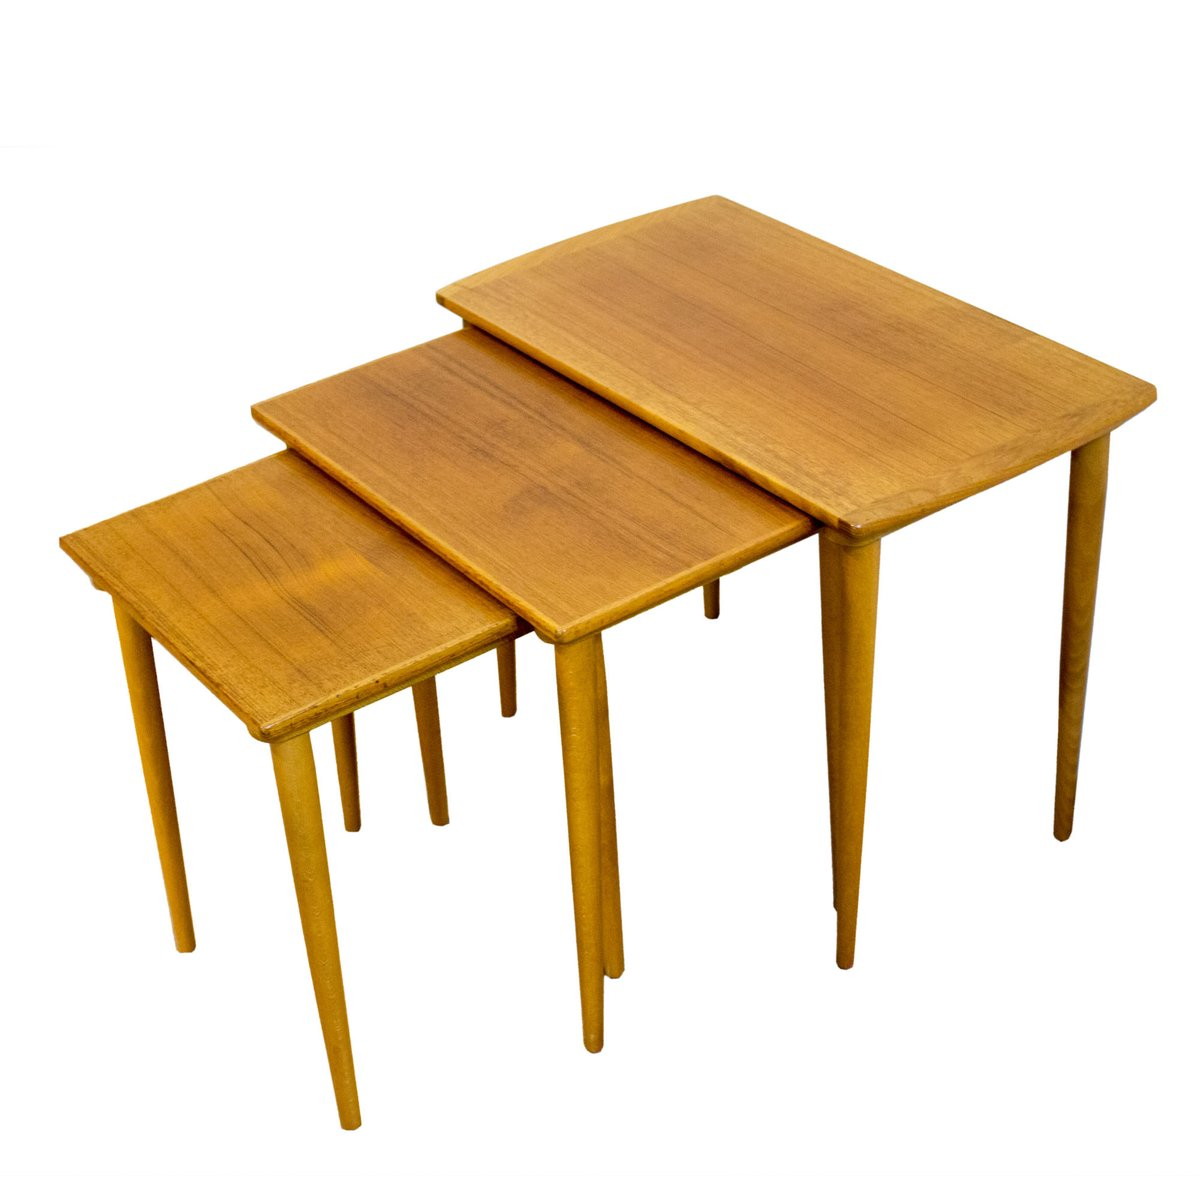 scandinavian nesting tables s for sale at pamono - scandinavian nesting tables s